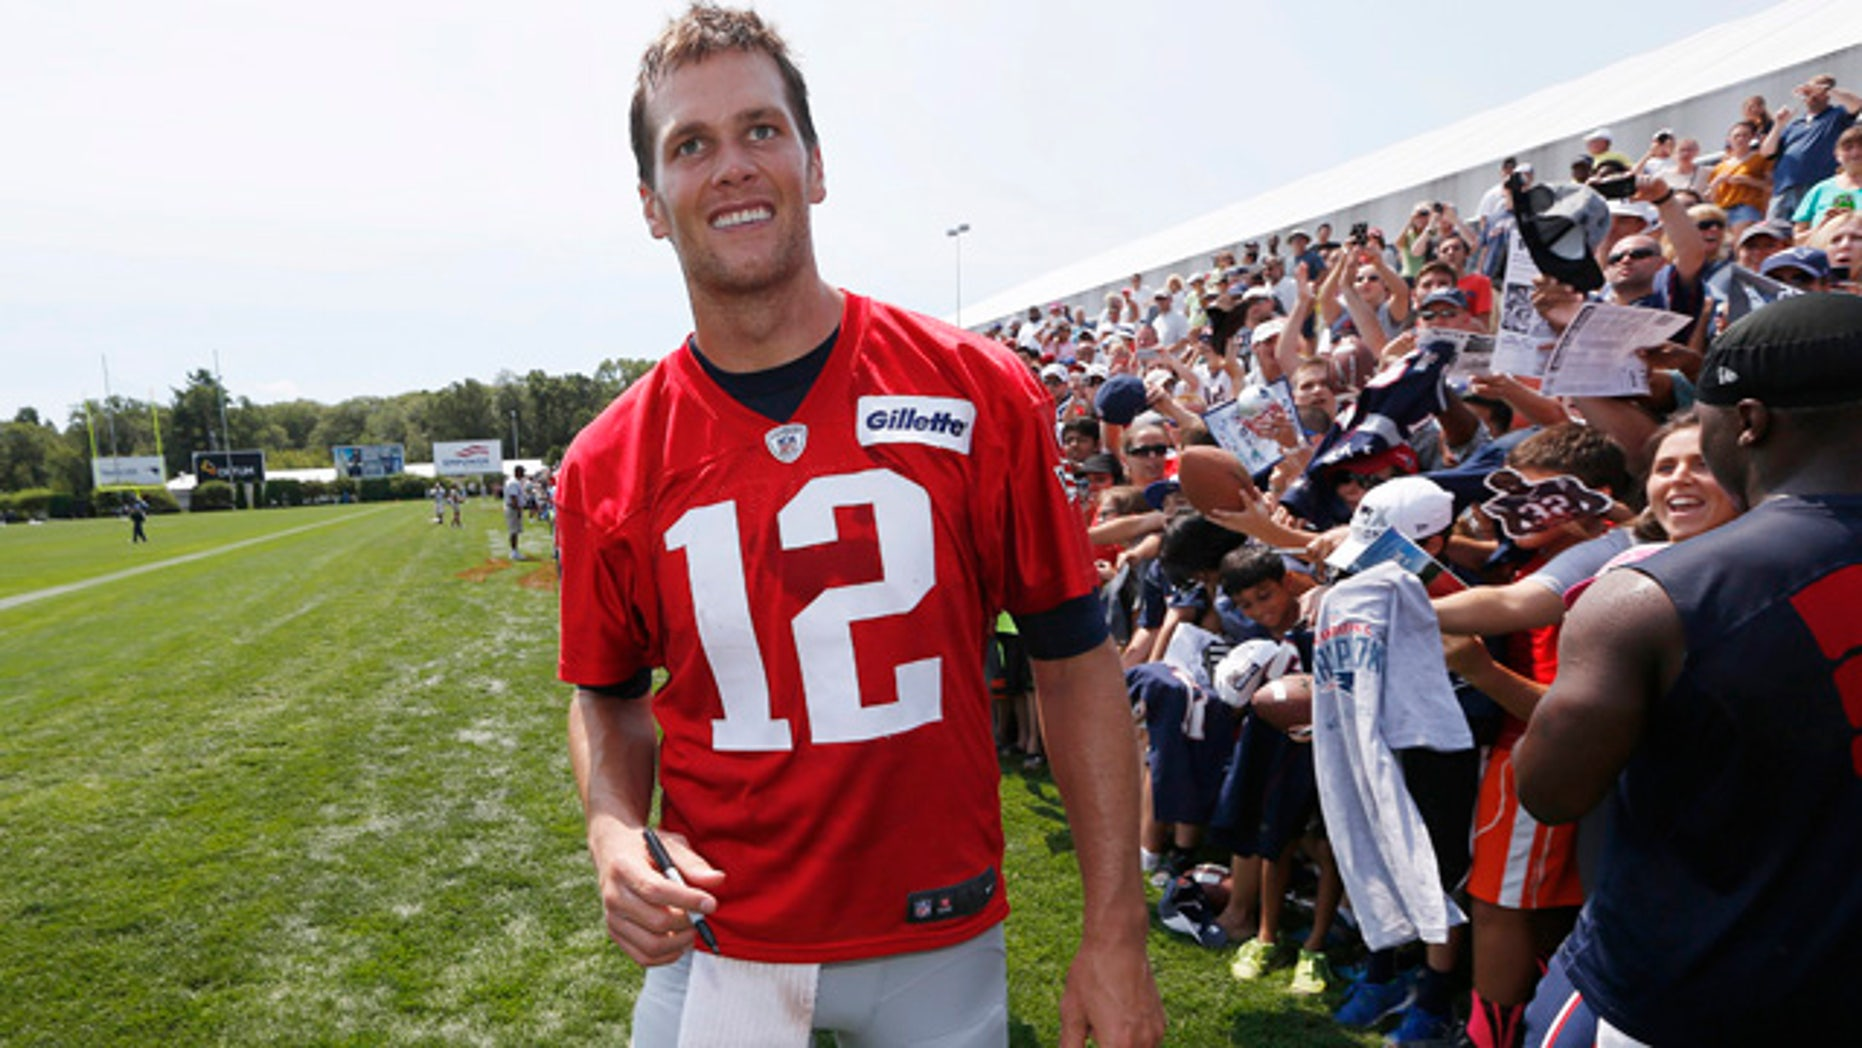 Aug. 1, 2015: New England Patriots quarterback Tom Brady walks down the line of fans signing autographs during an NFL football training camp in Foxborough, Mass. (AP Photo/Michael Dwyer)